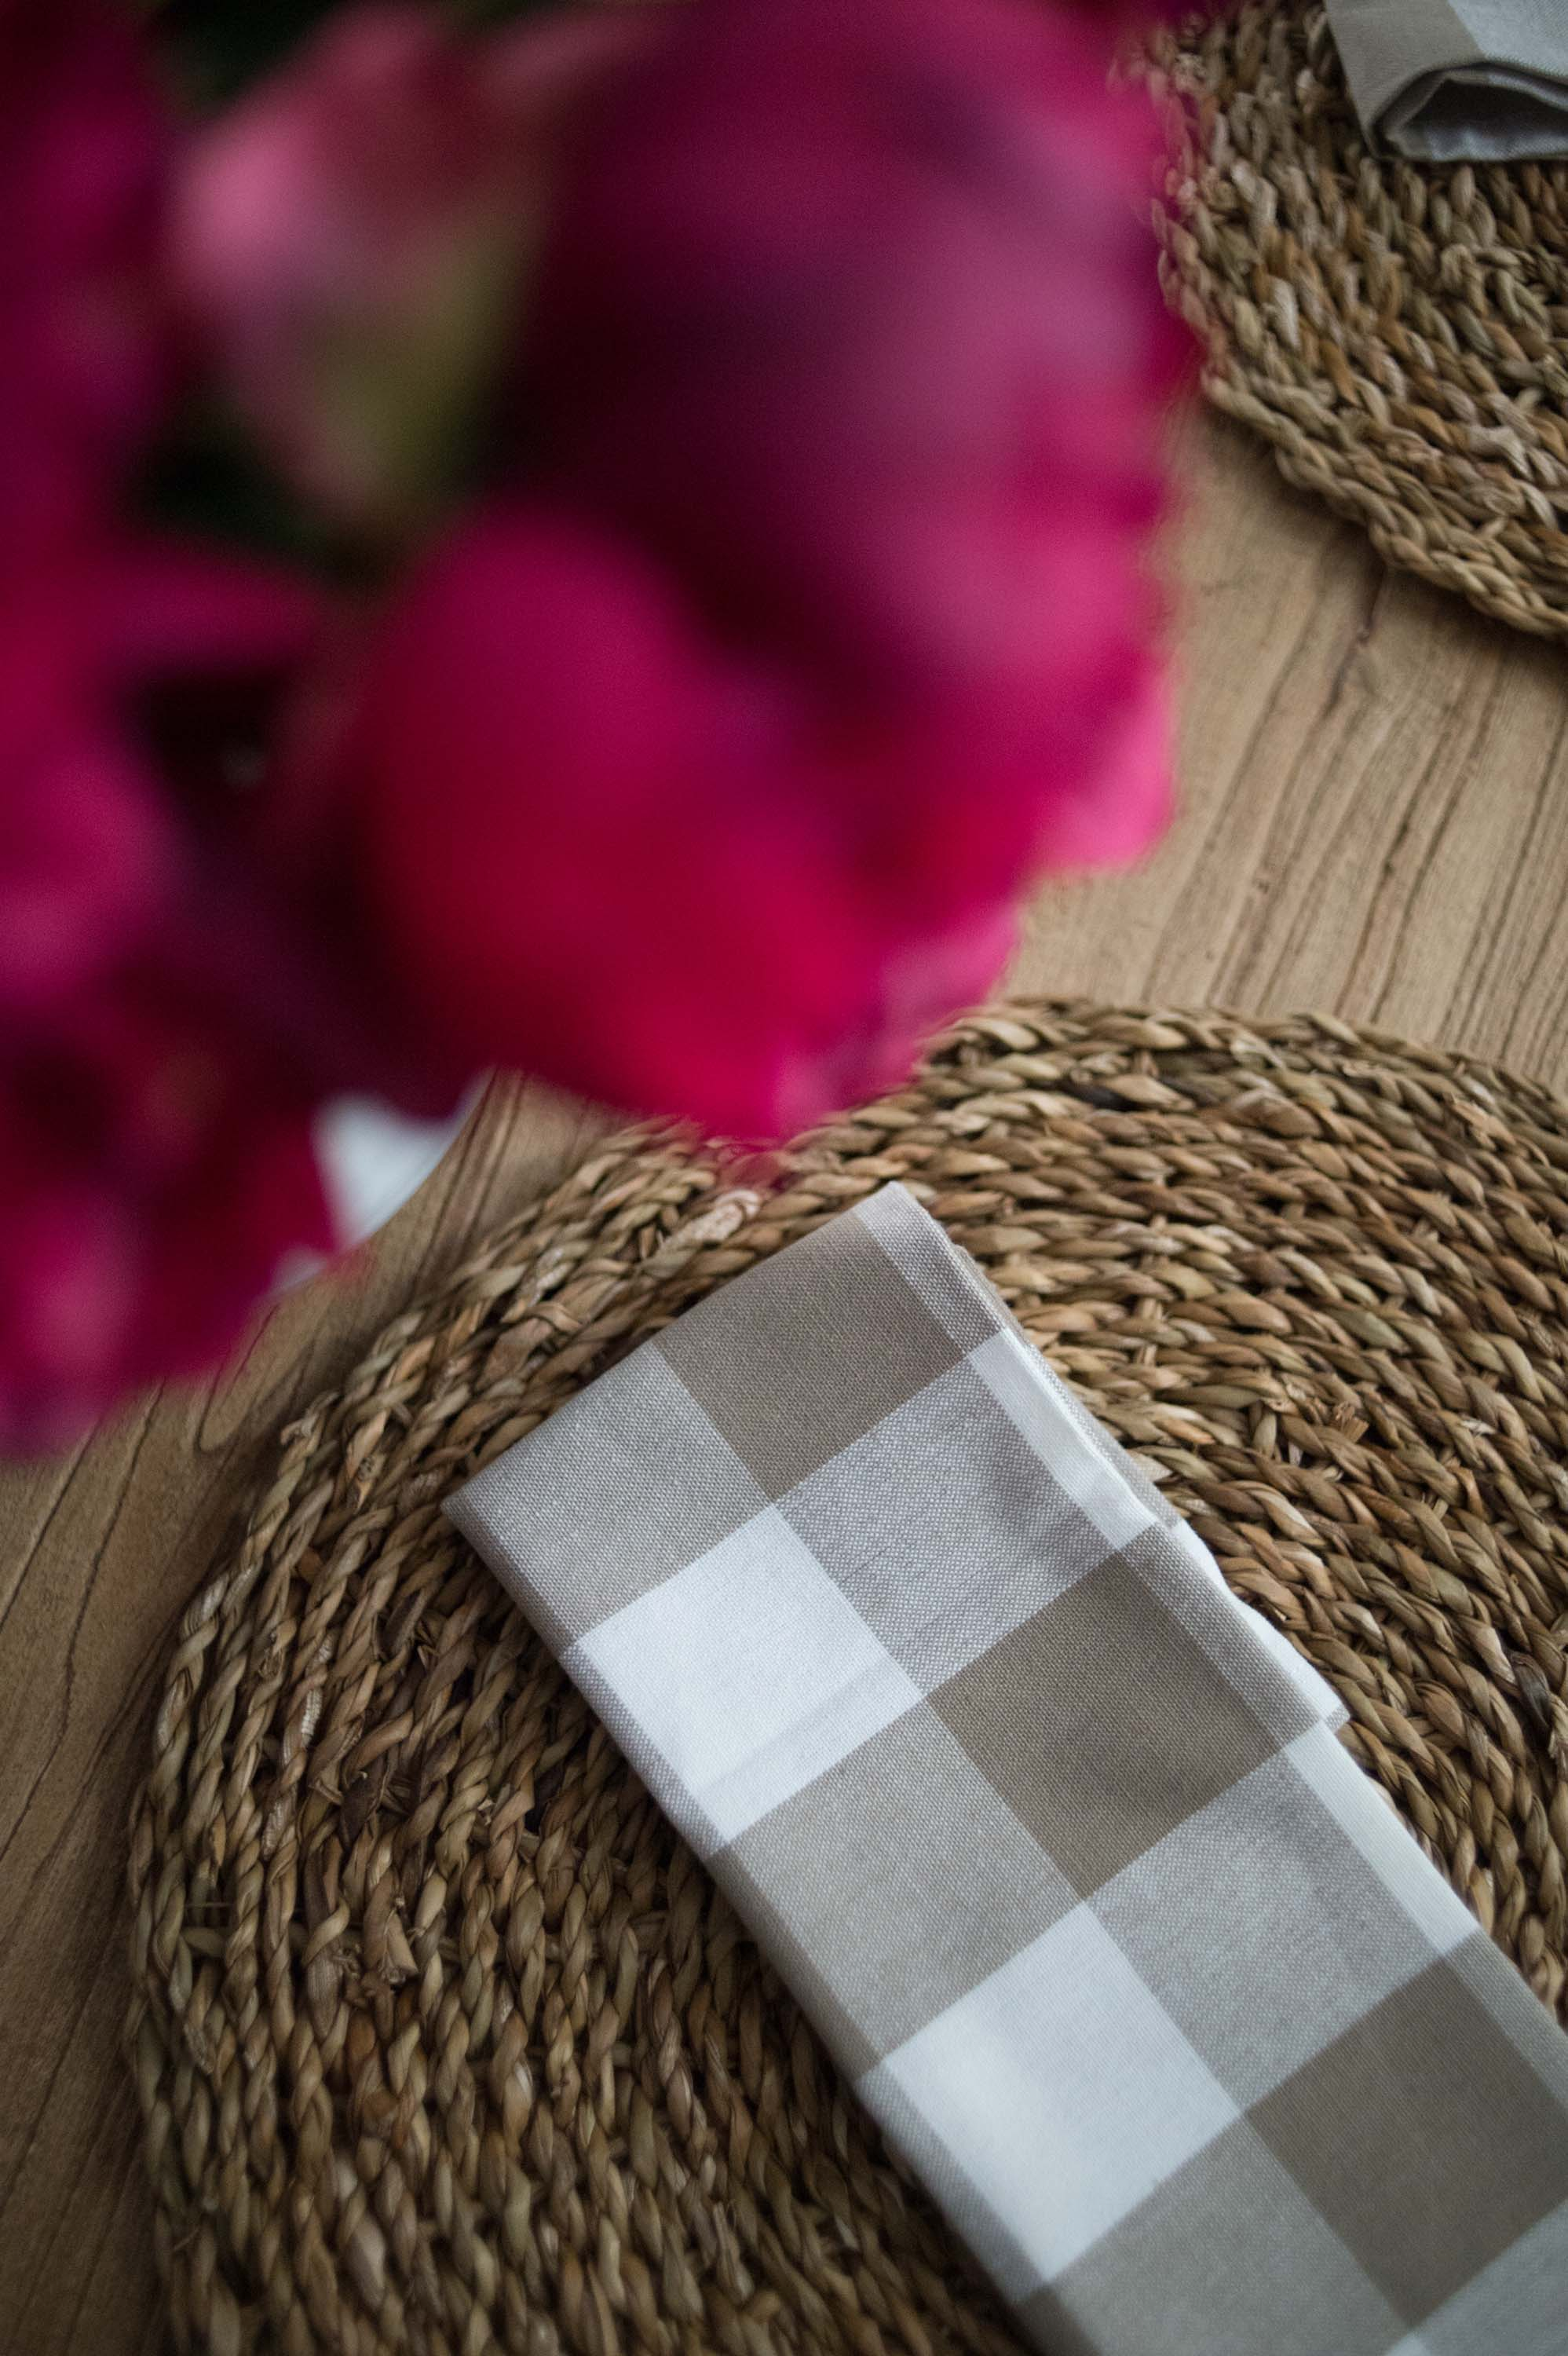 Dining Room Table Floral with Check Napkins & Seagrass Placemat